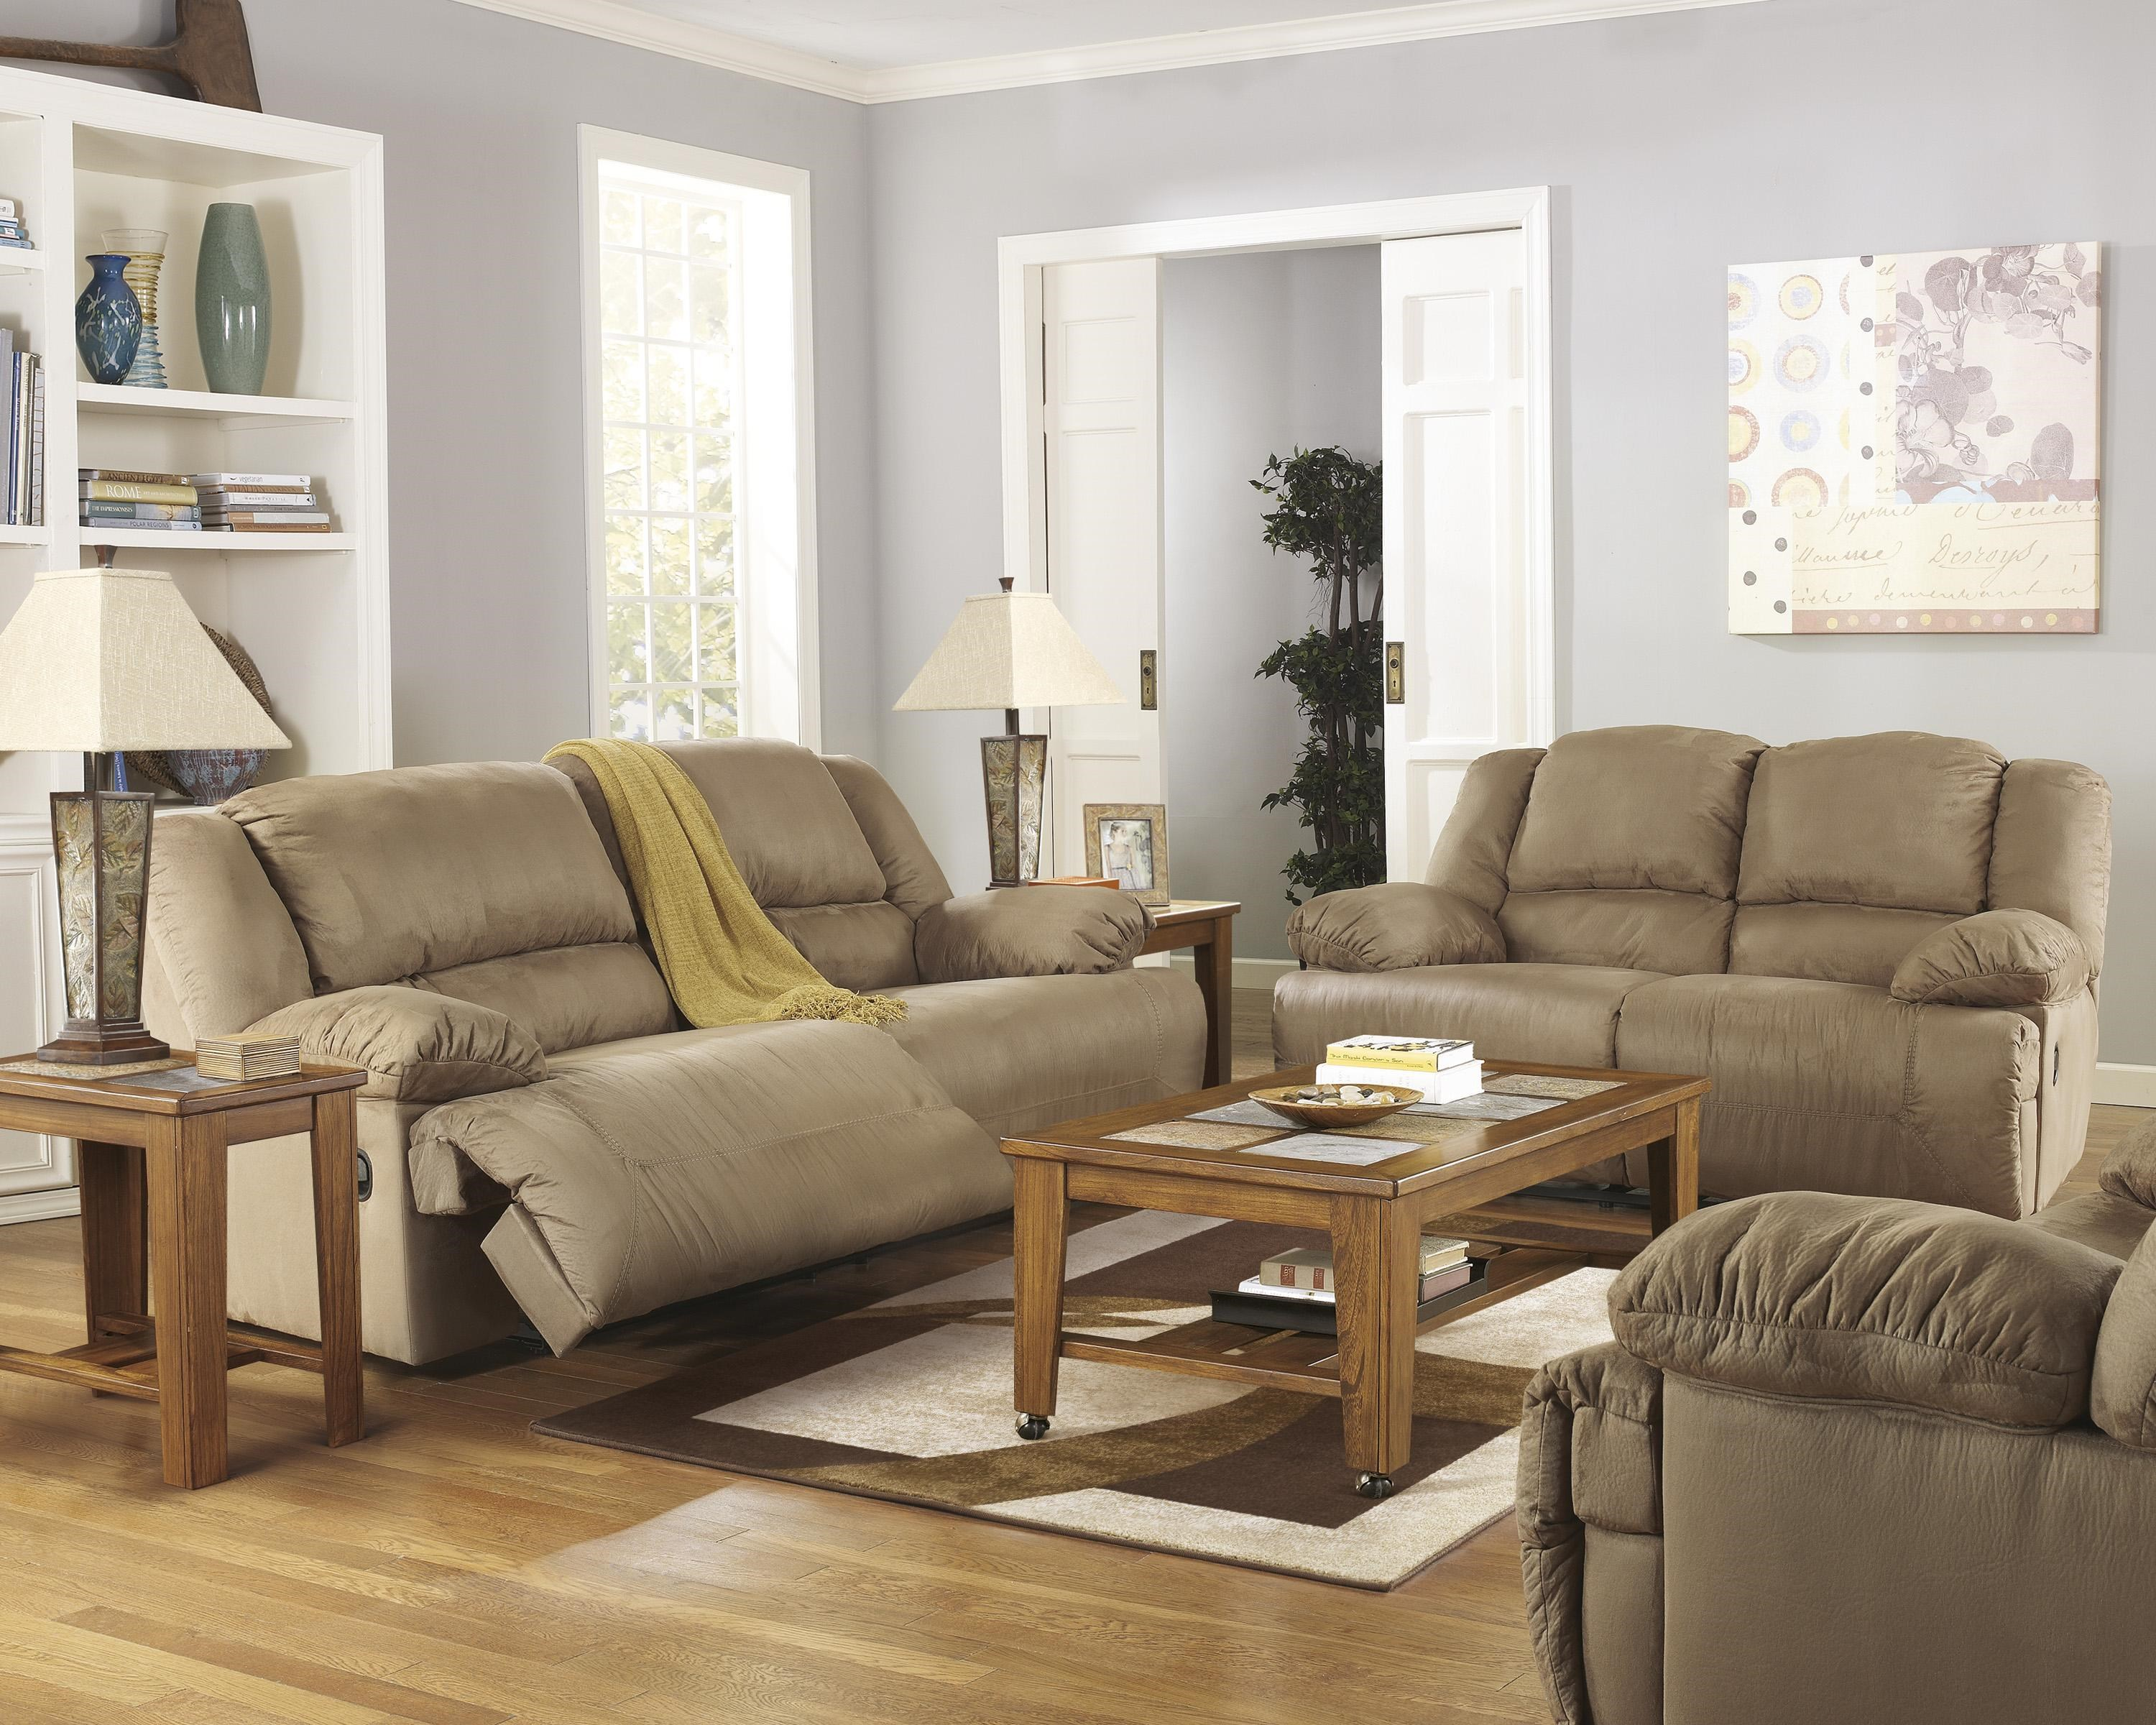 Genial StyleLine SONJA Reclining Living Room Group